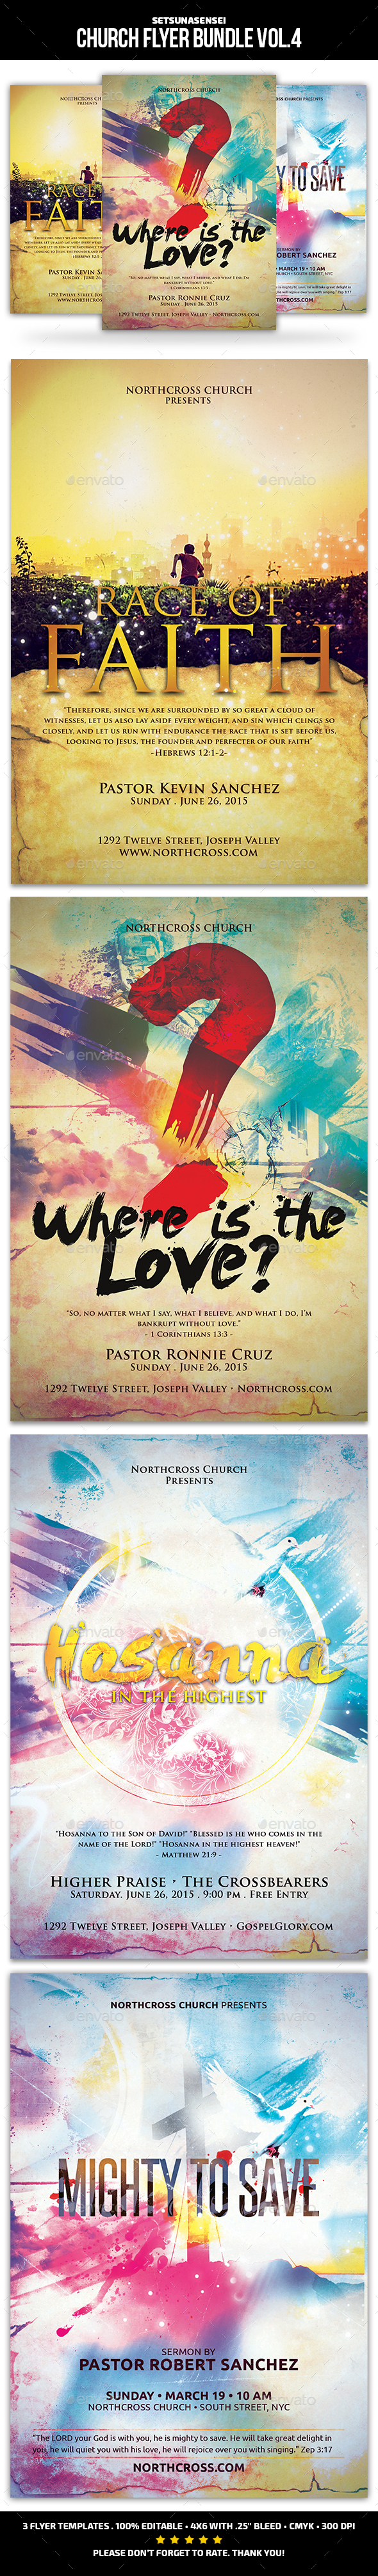 Church Flyer Bundle Vol 5